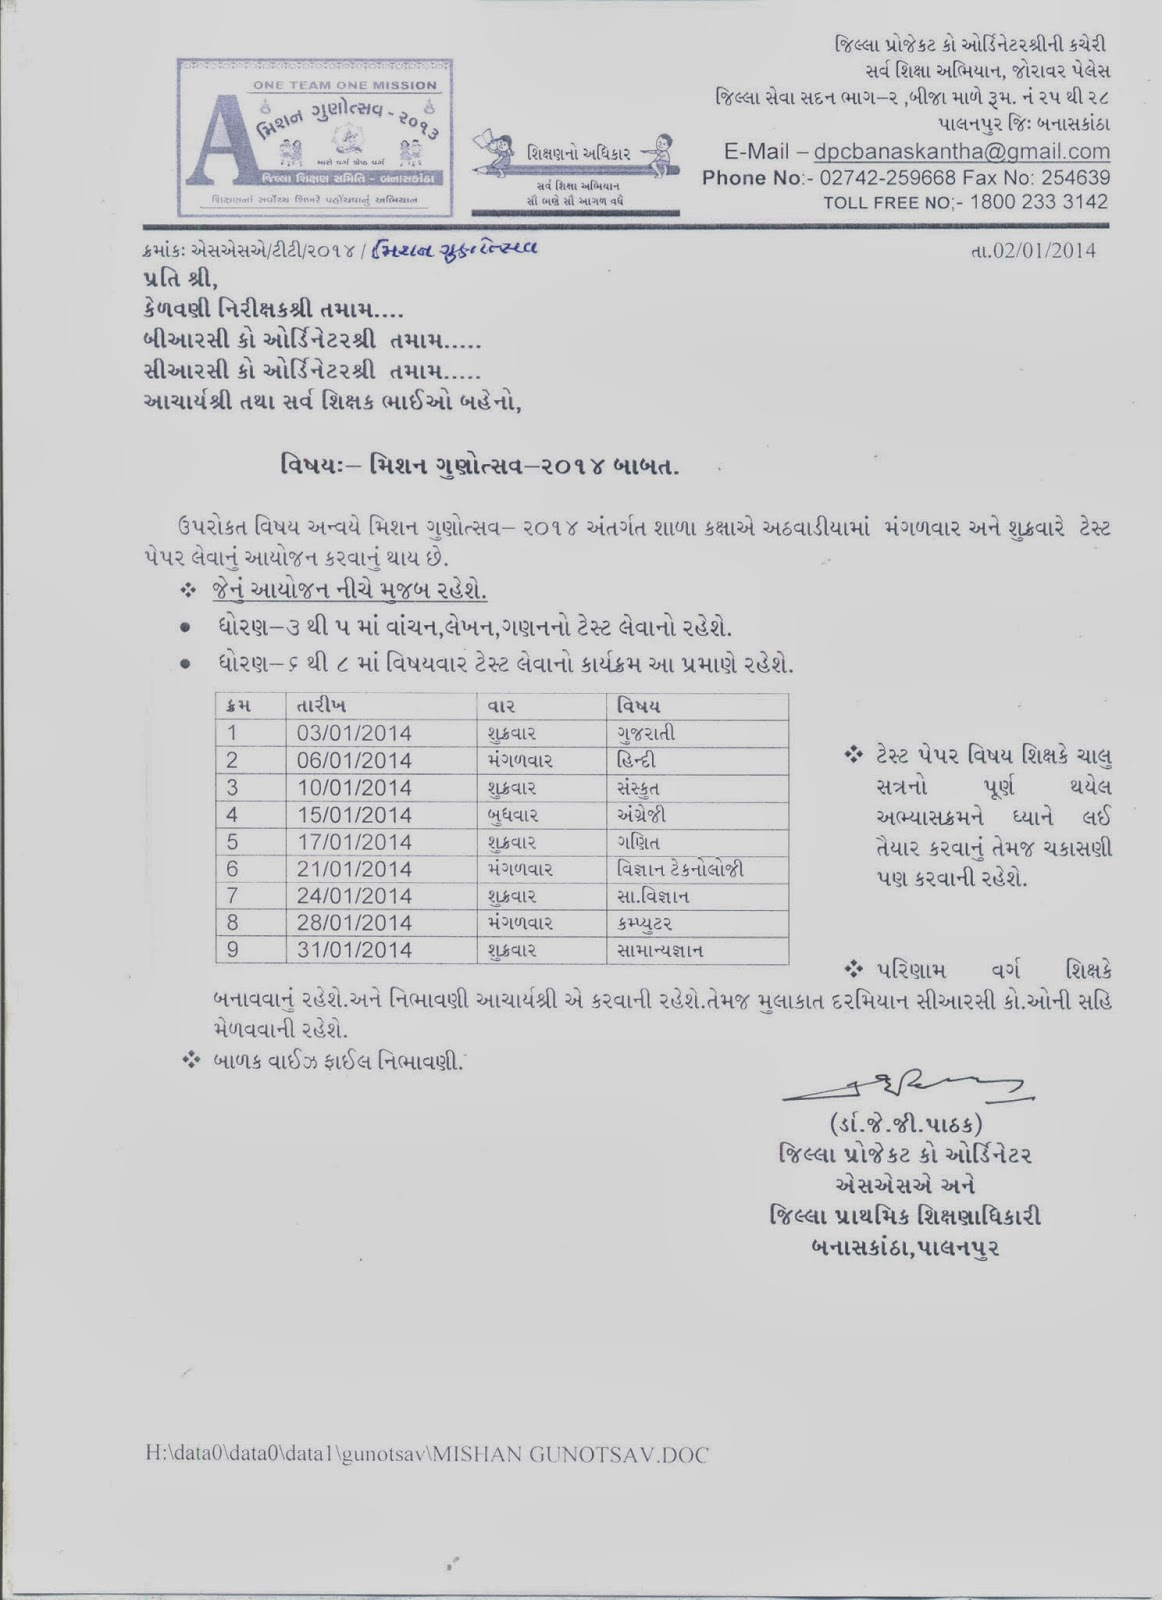 Mission Gunotsav 2014 January School Test Time Table Banaskantha Dist